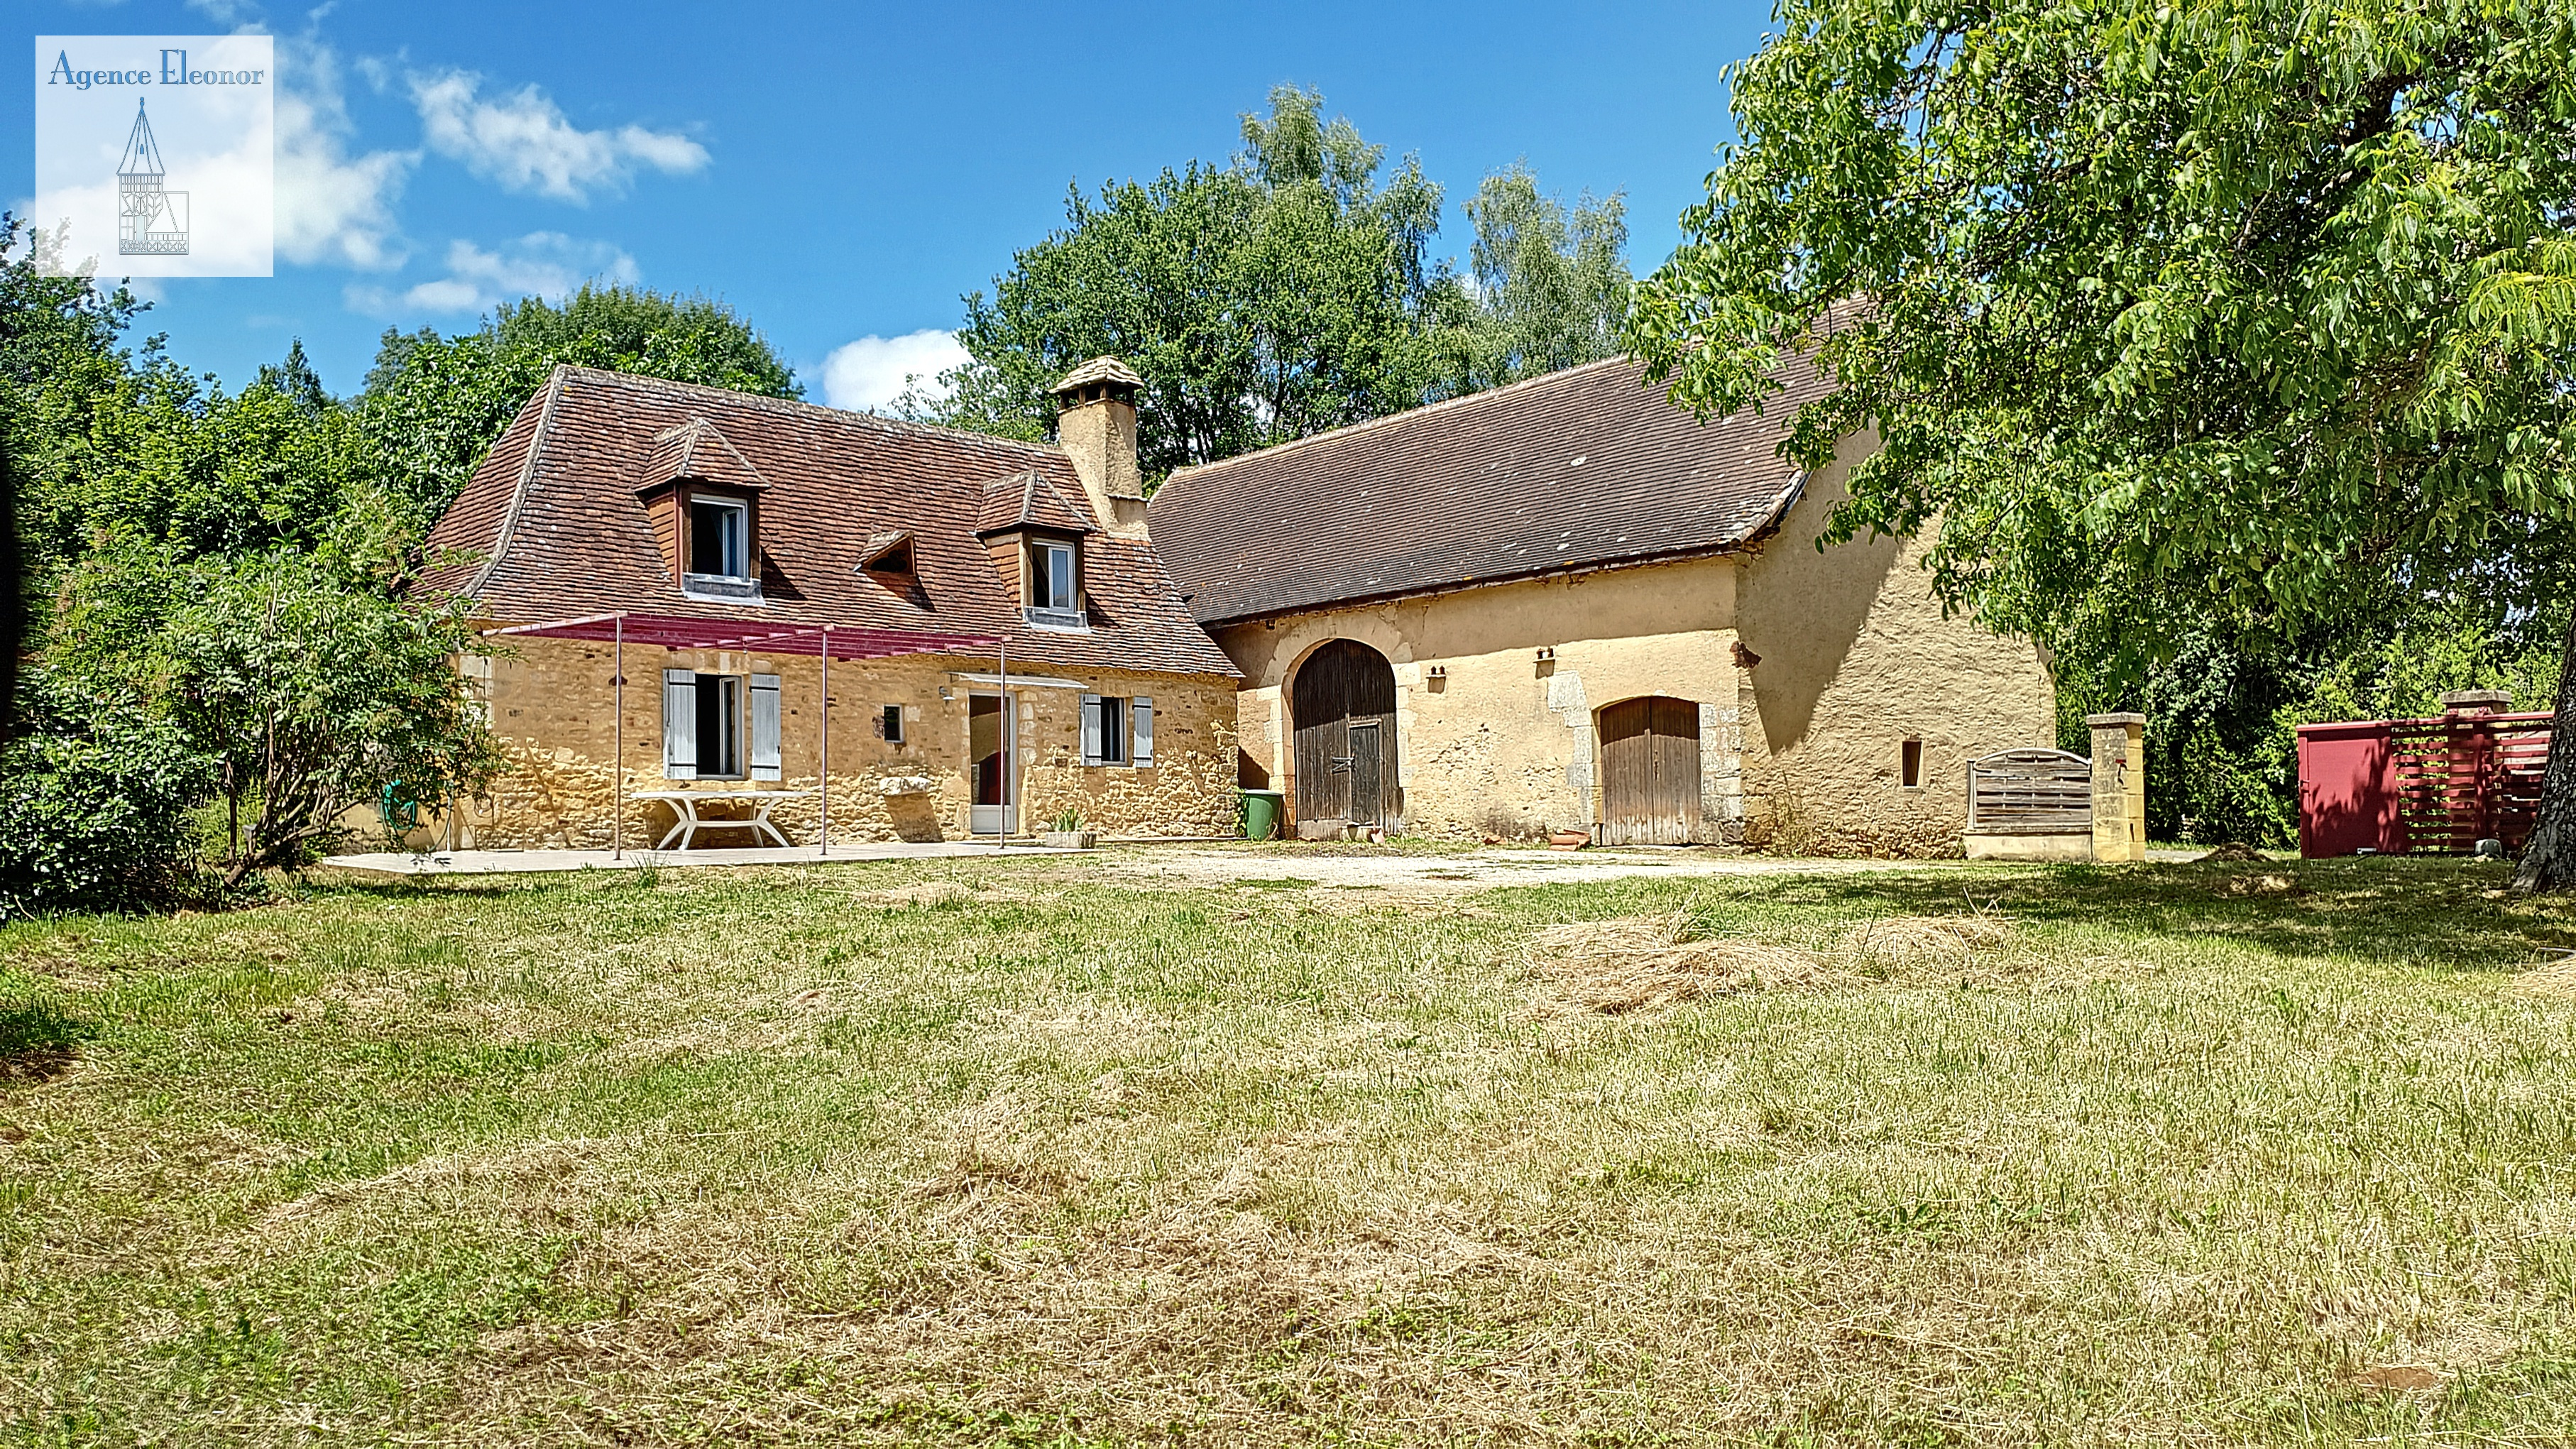 Farm House for sale France